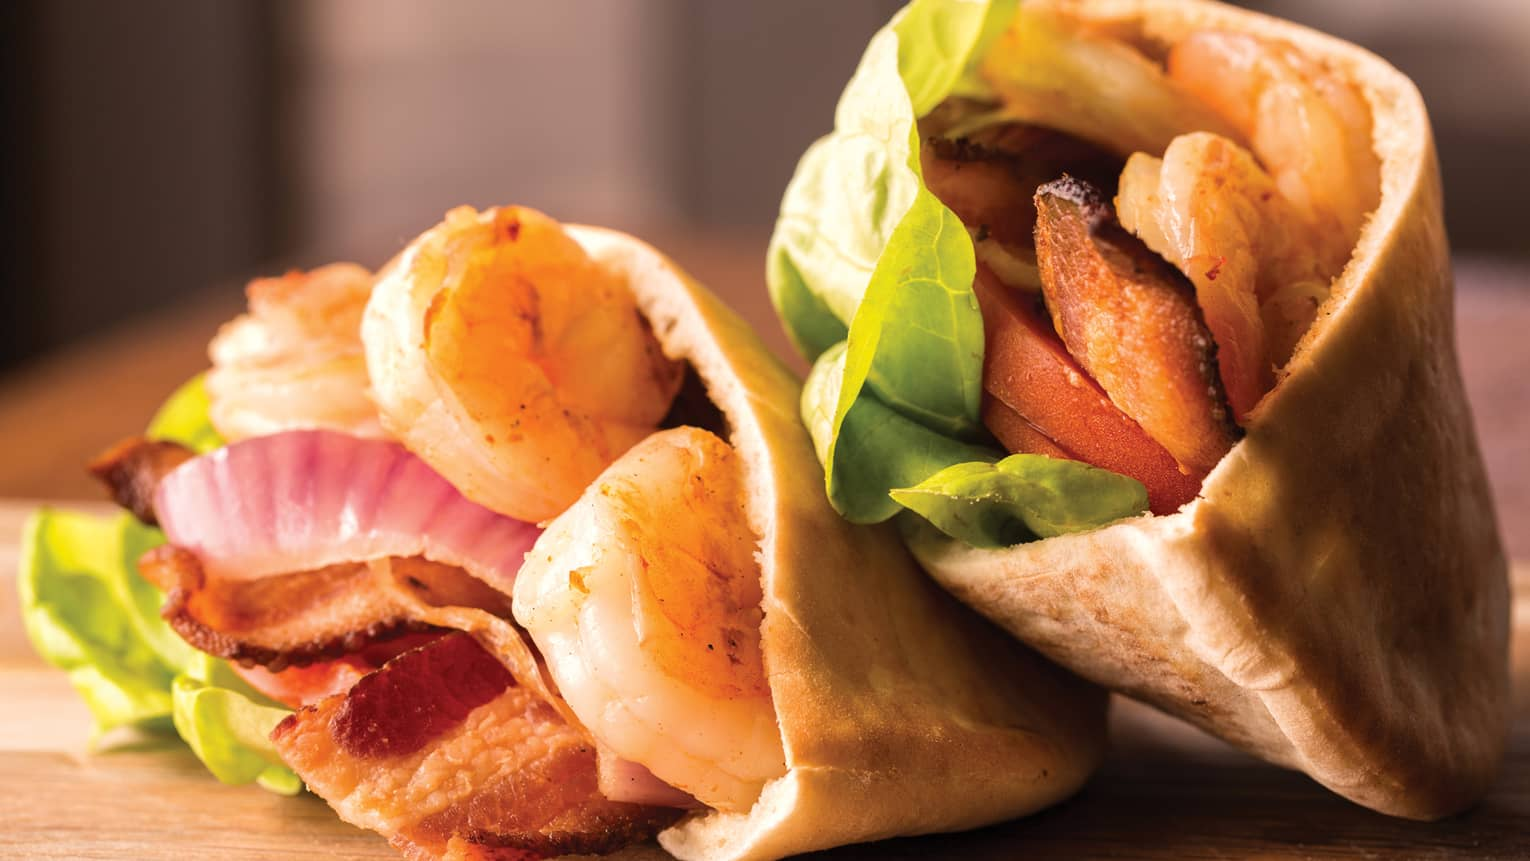 Hulopoe Bay Prawn B.L.T., shrimp, bacon, lettuce and tomato in pita wraps